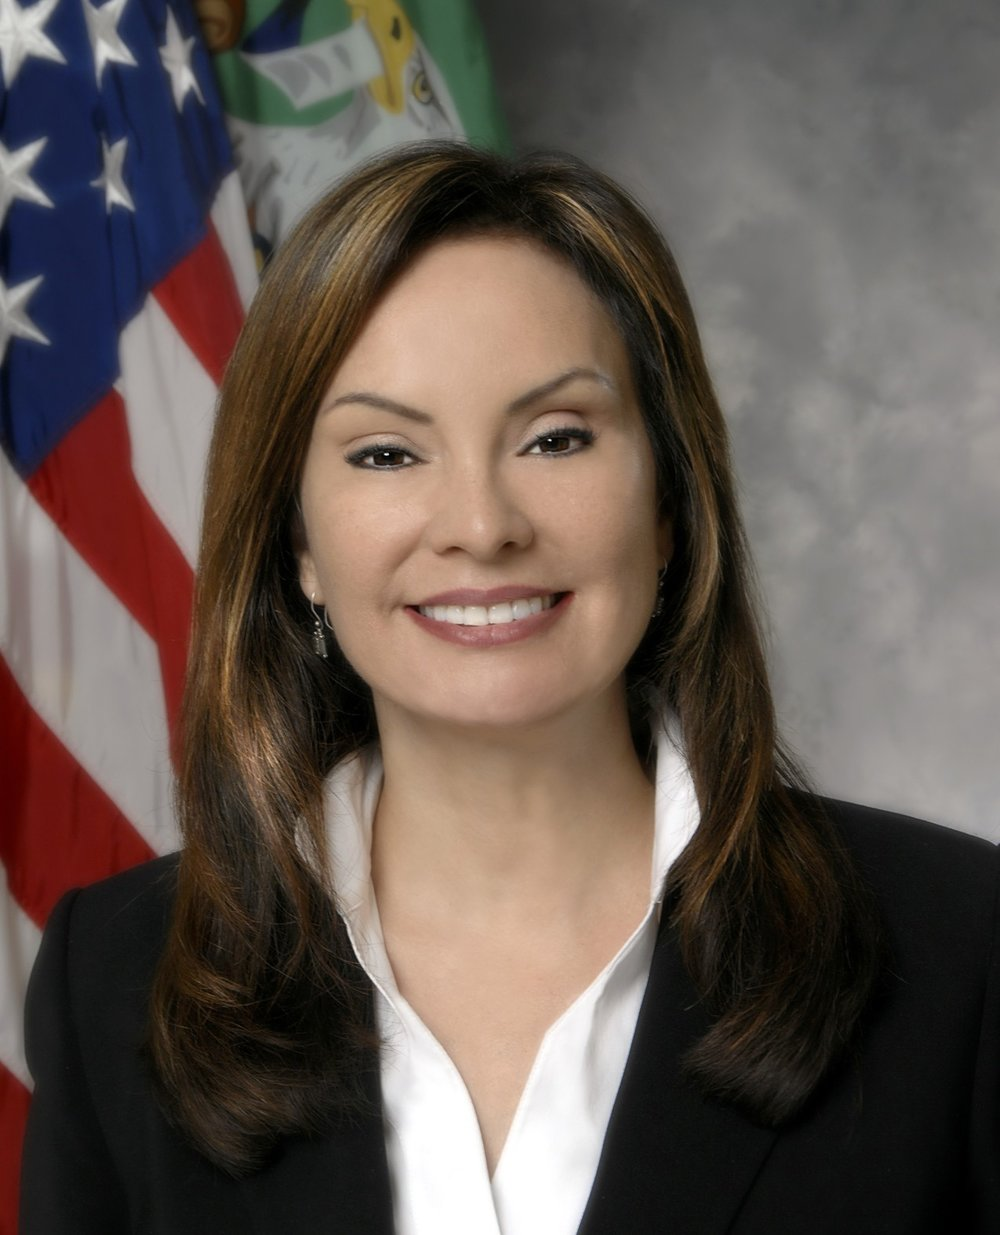 Rosie rios - 3rd Treasurer of the United States